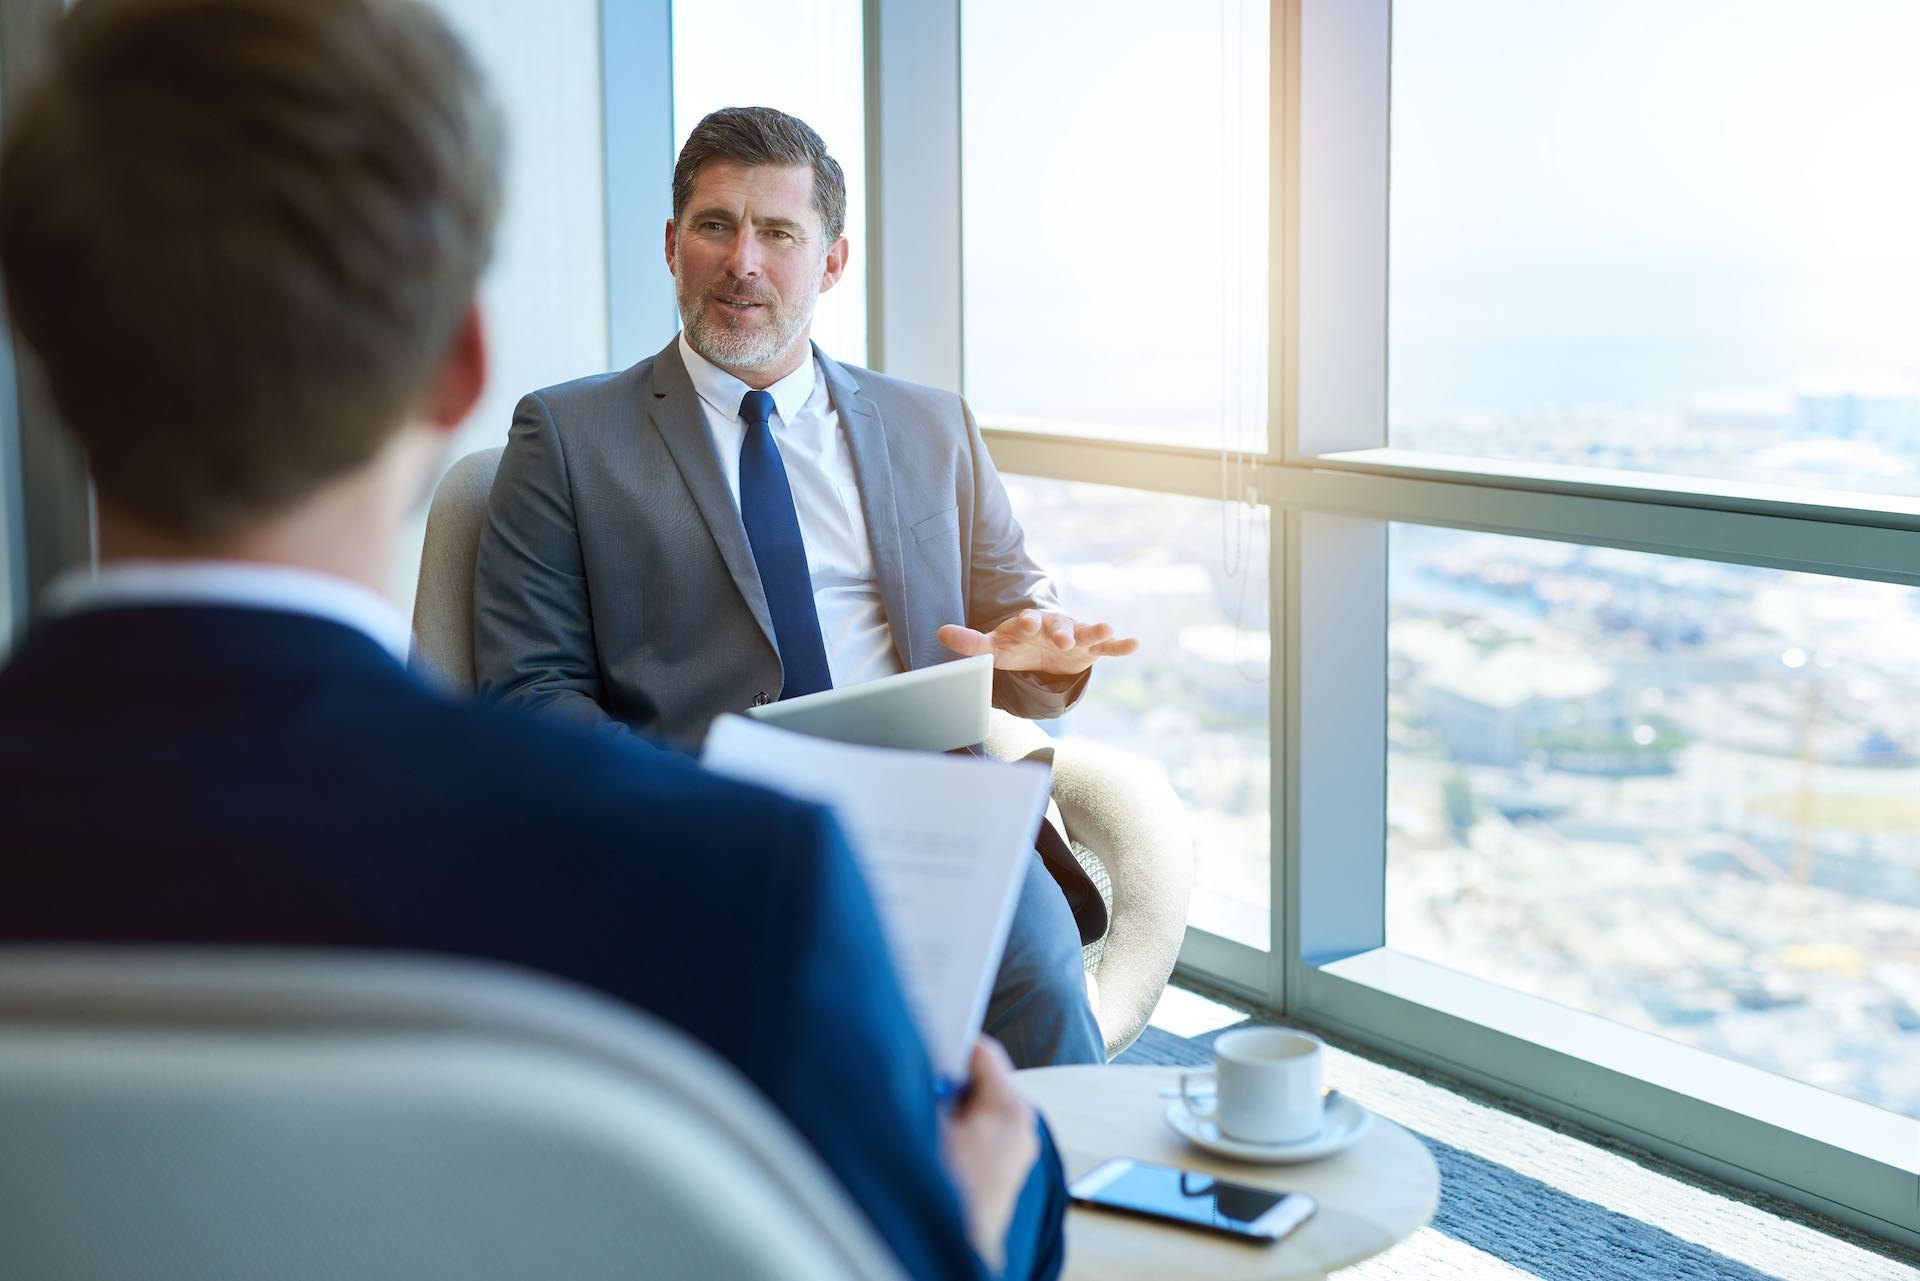 A C level team member is conducting a one-on-one interview for an upper management position in an elite corporate company.